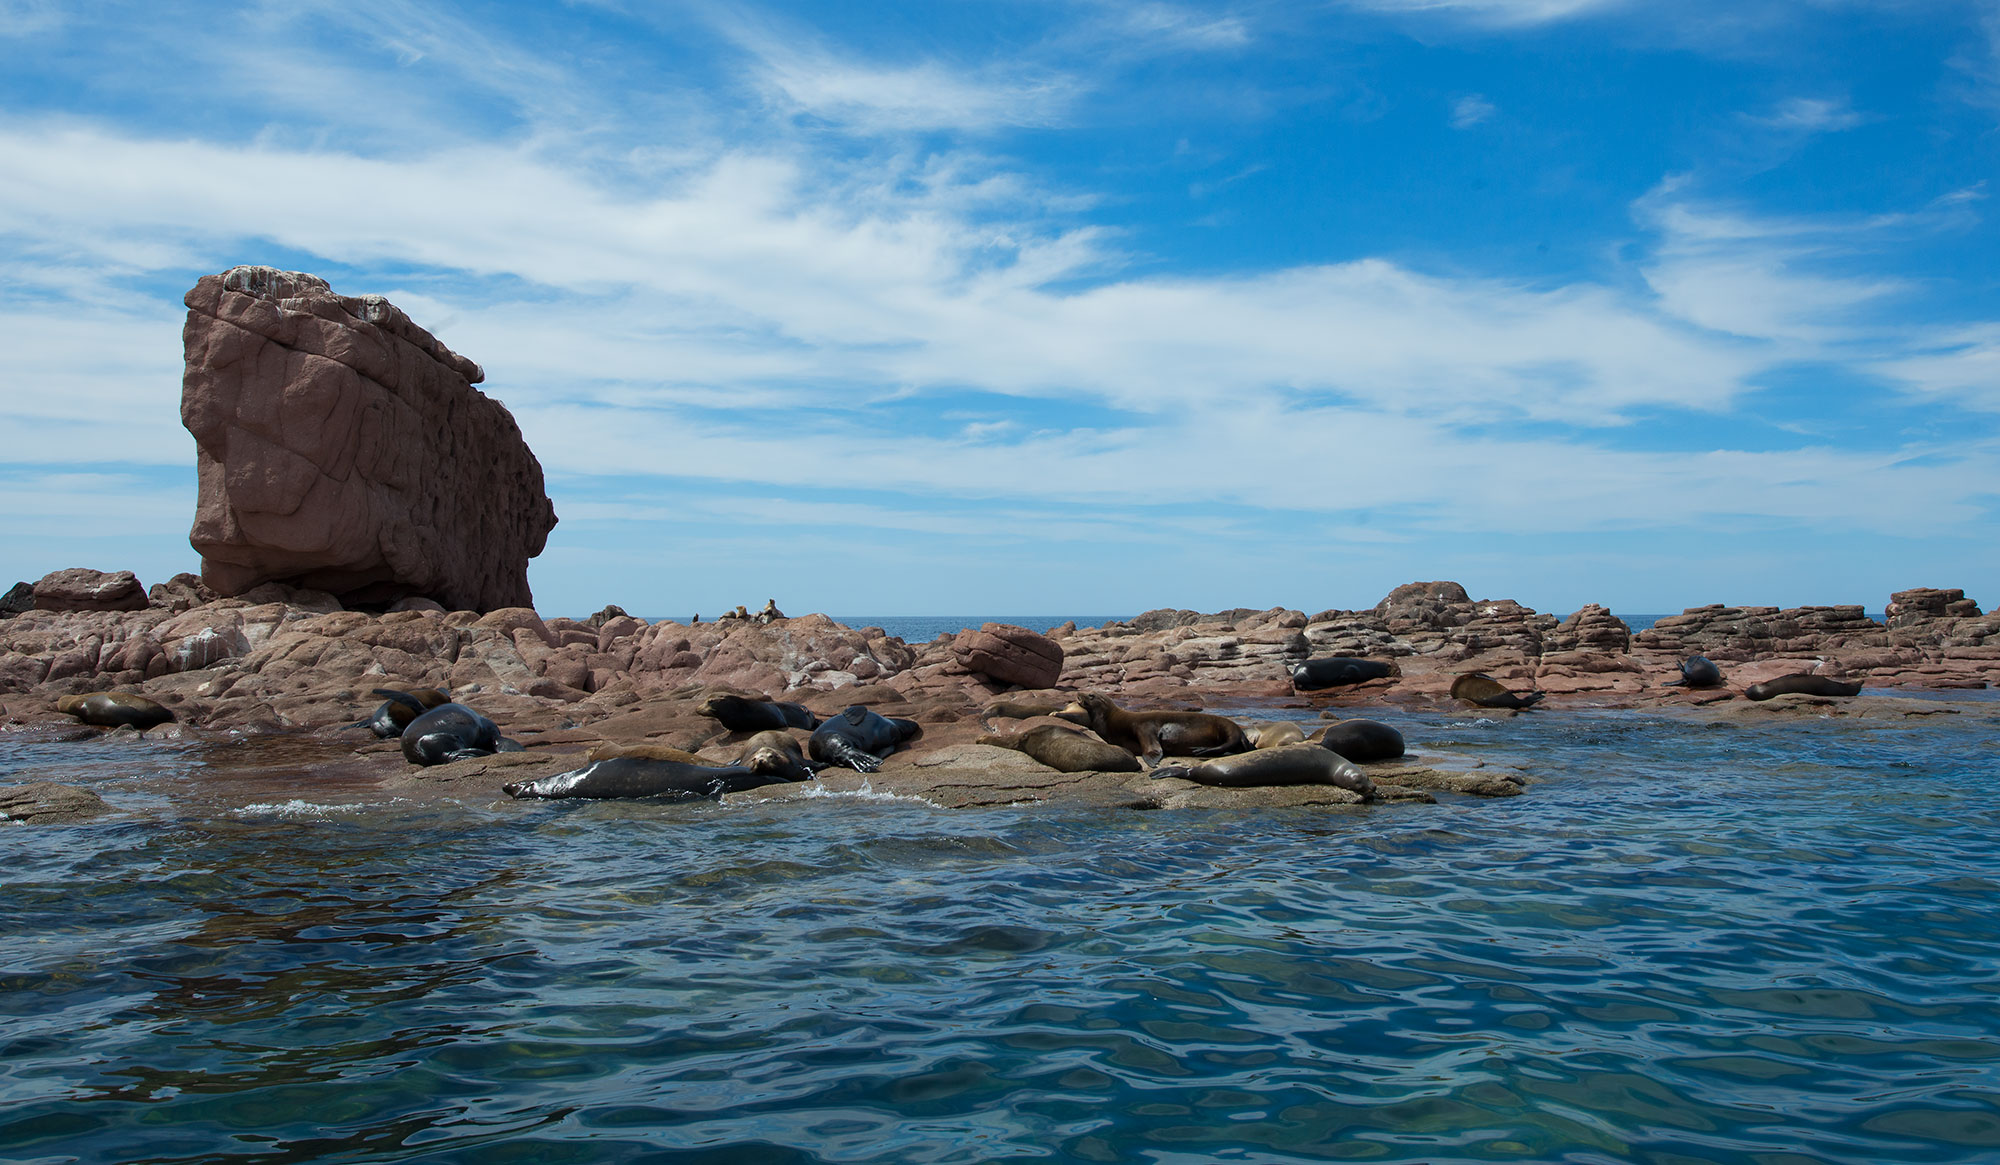 California Sea Lions at Los Islotes, Sea of Cortez, Mexico